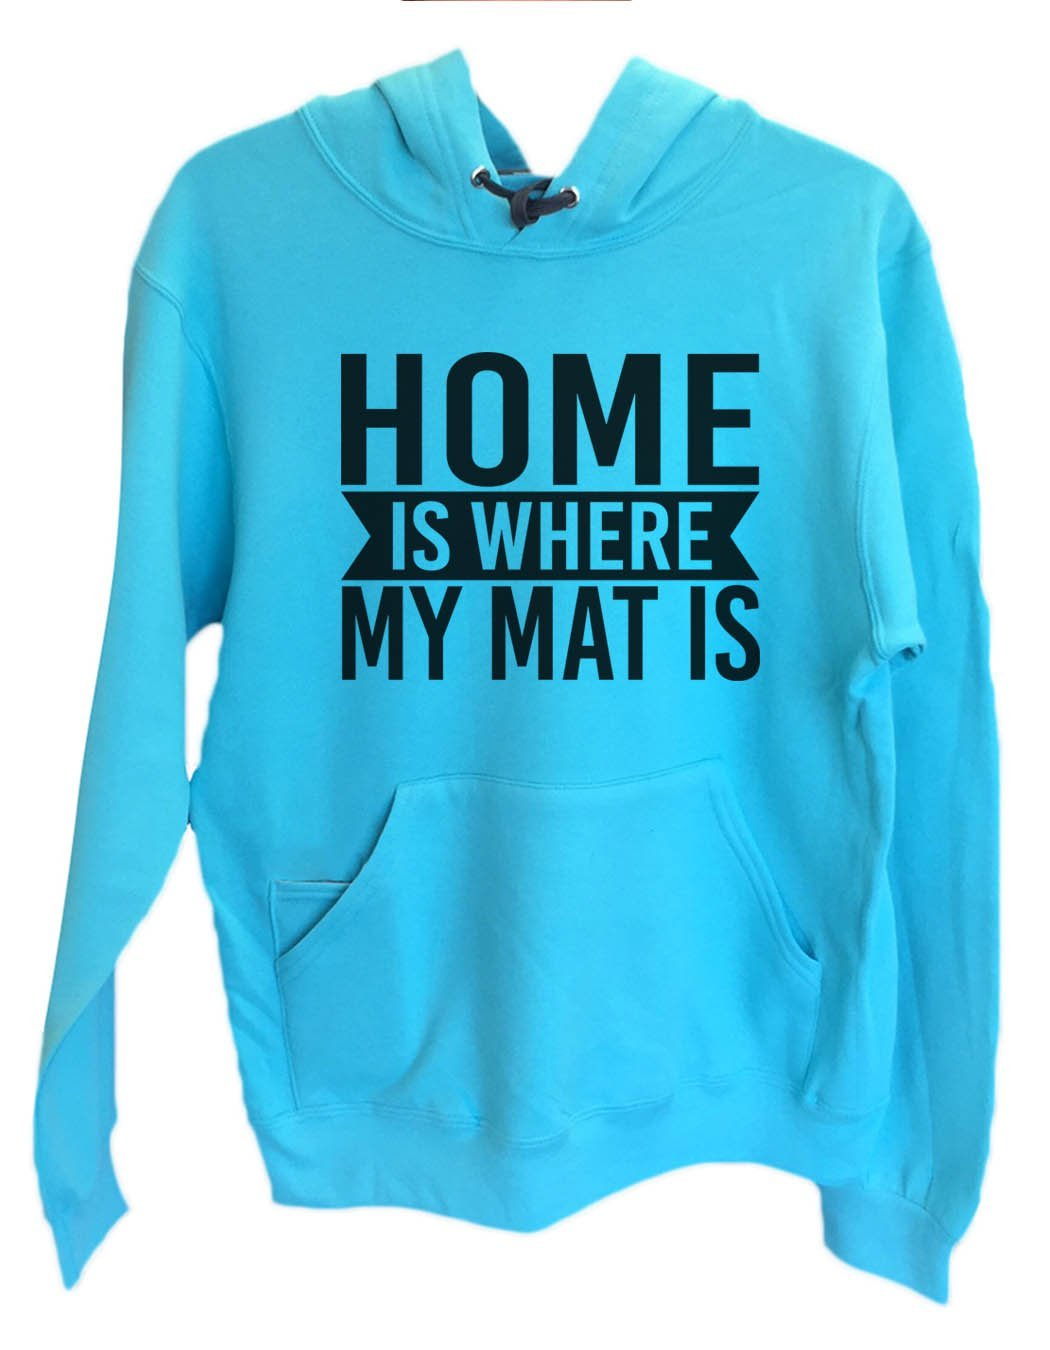 UNISEX HOODIE - Home Is Where My Mat Is - FUNNY MENS AND WOMENS HOODED SWEATSHIRTS - 2132 Funny Shirt Small / Turquoise